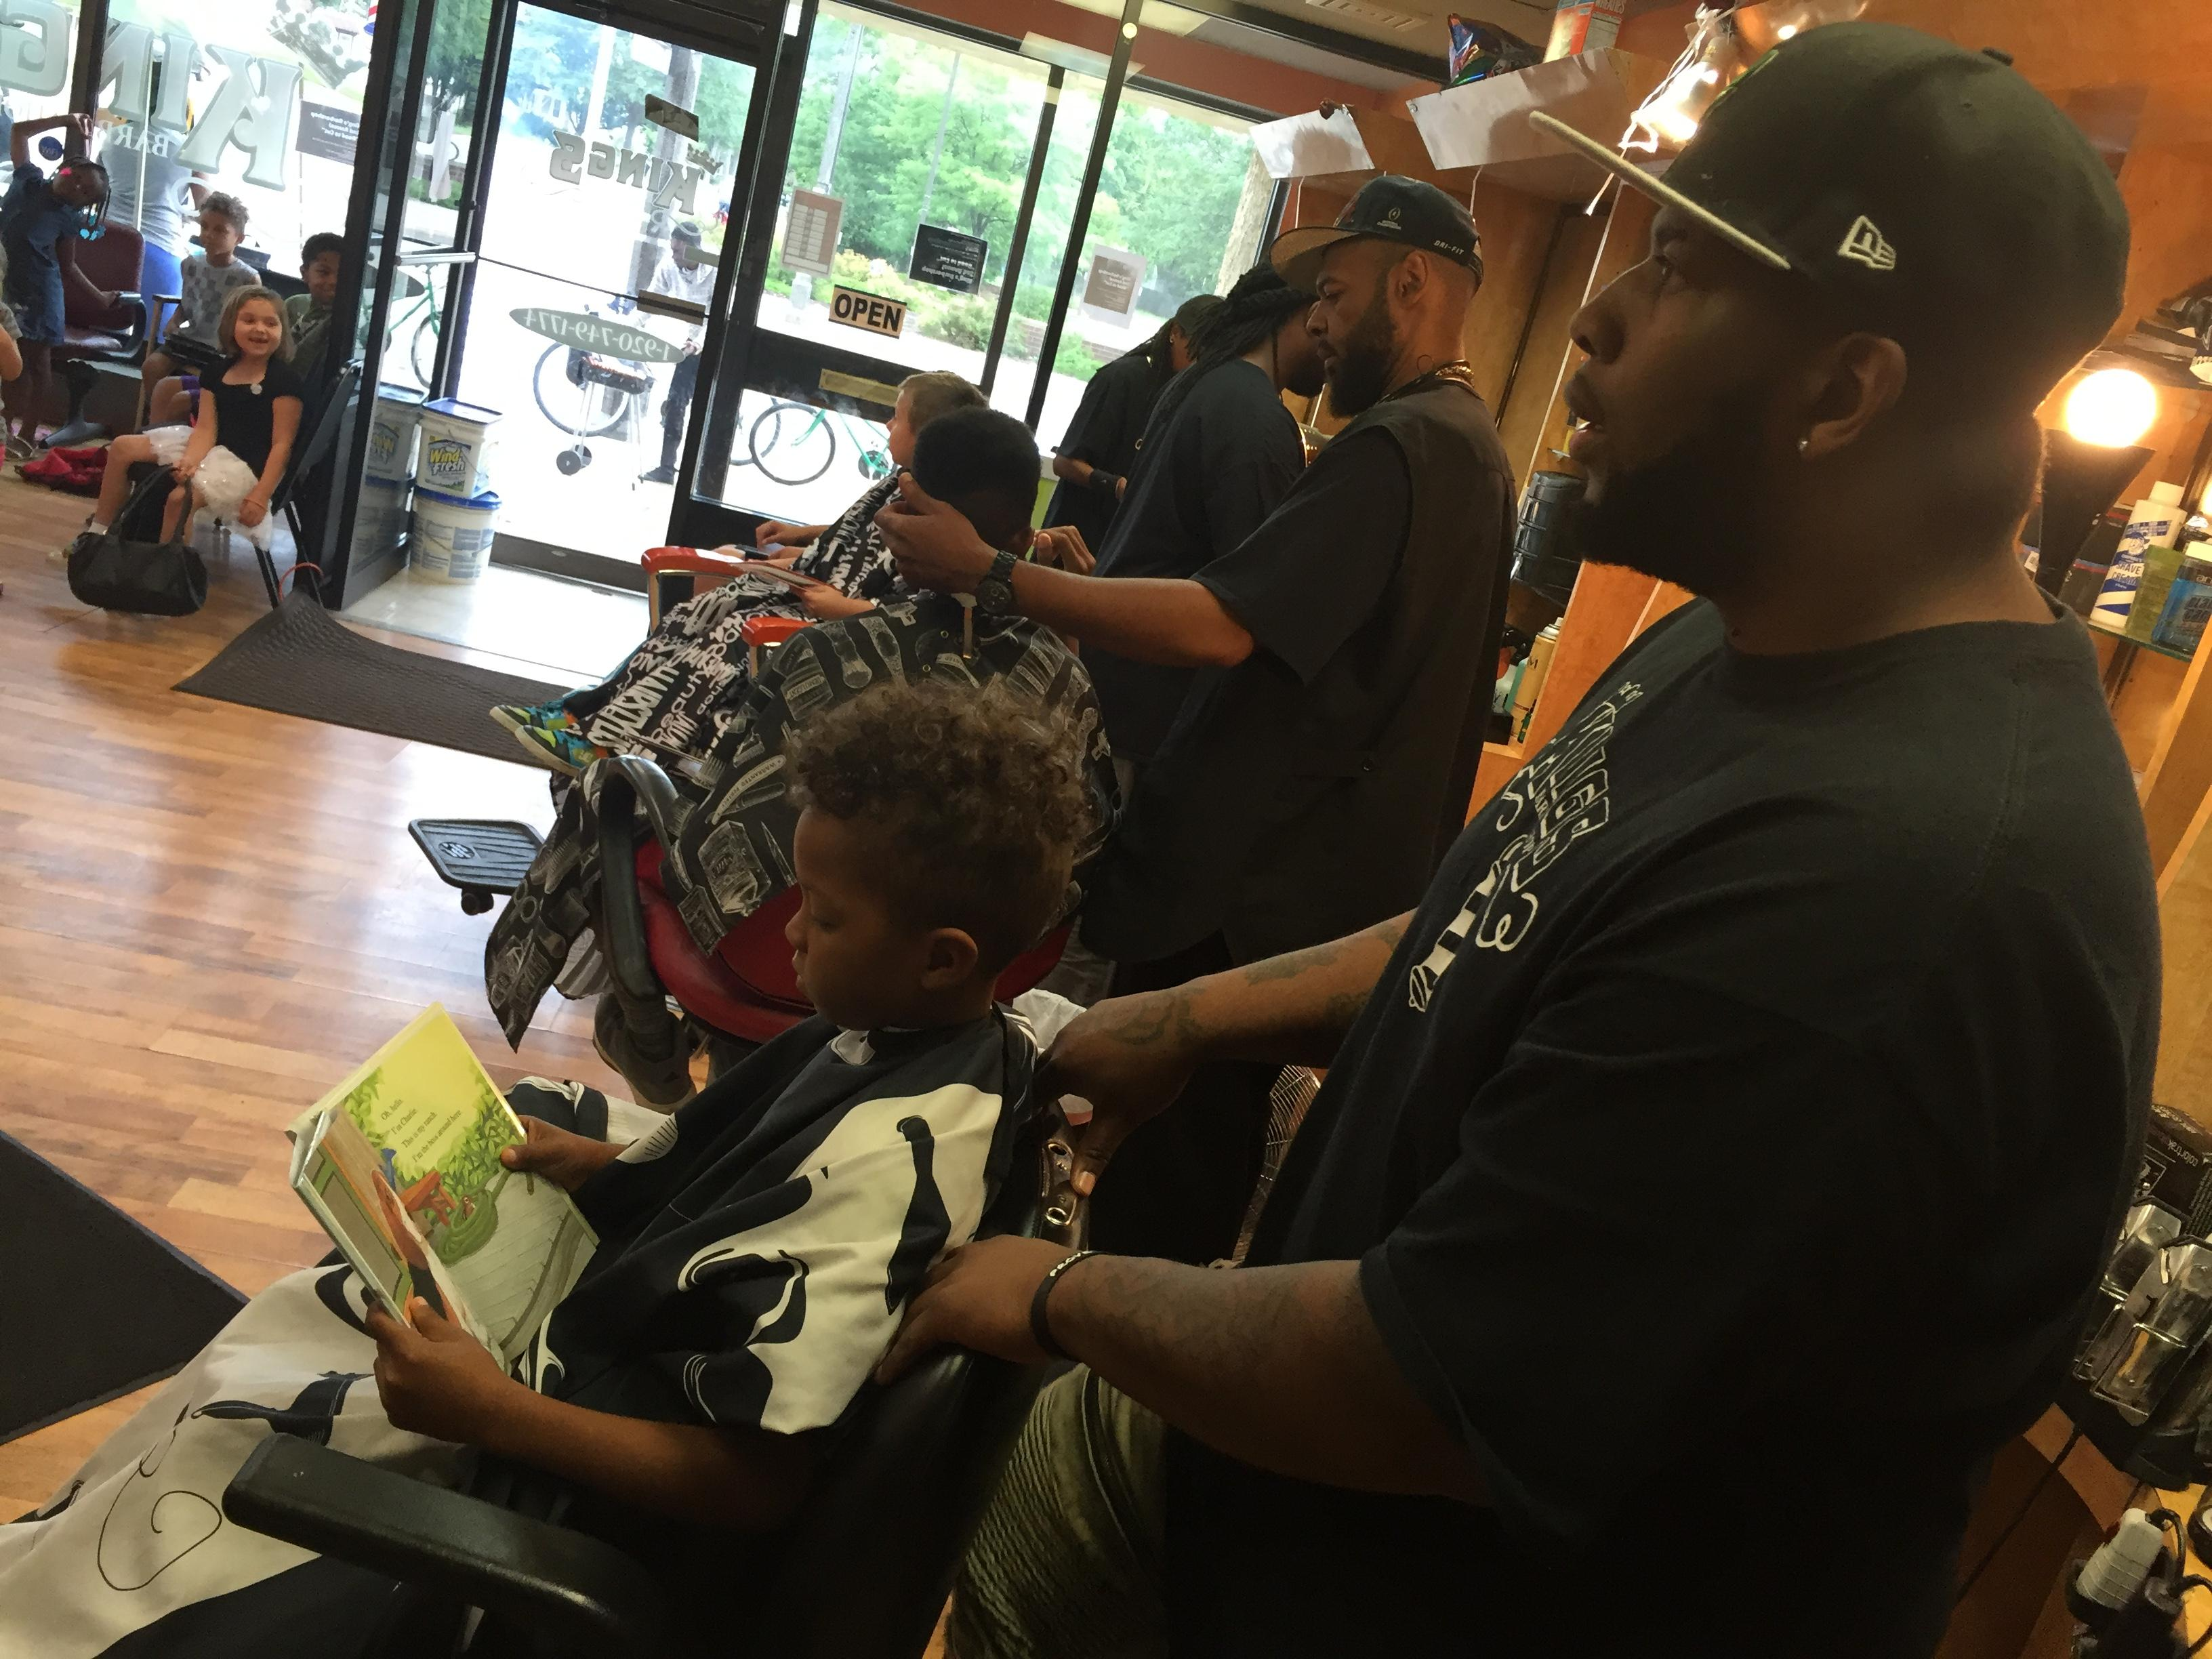 Daniel Gilbert, foreground, cuts hair for a child who is reading a book Aug. 28, 2017, at Kings Barber Shop in Appleton. (WLUK/Eric Peterson)